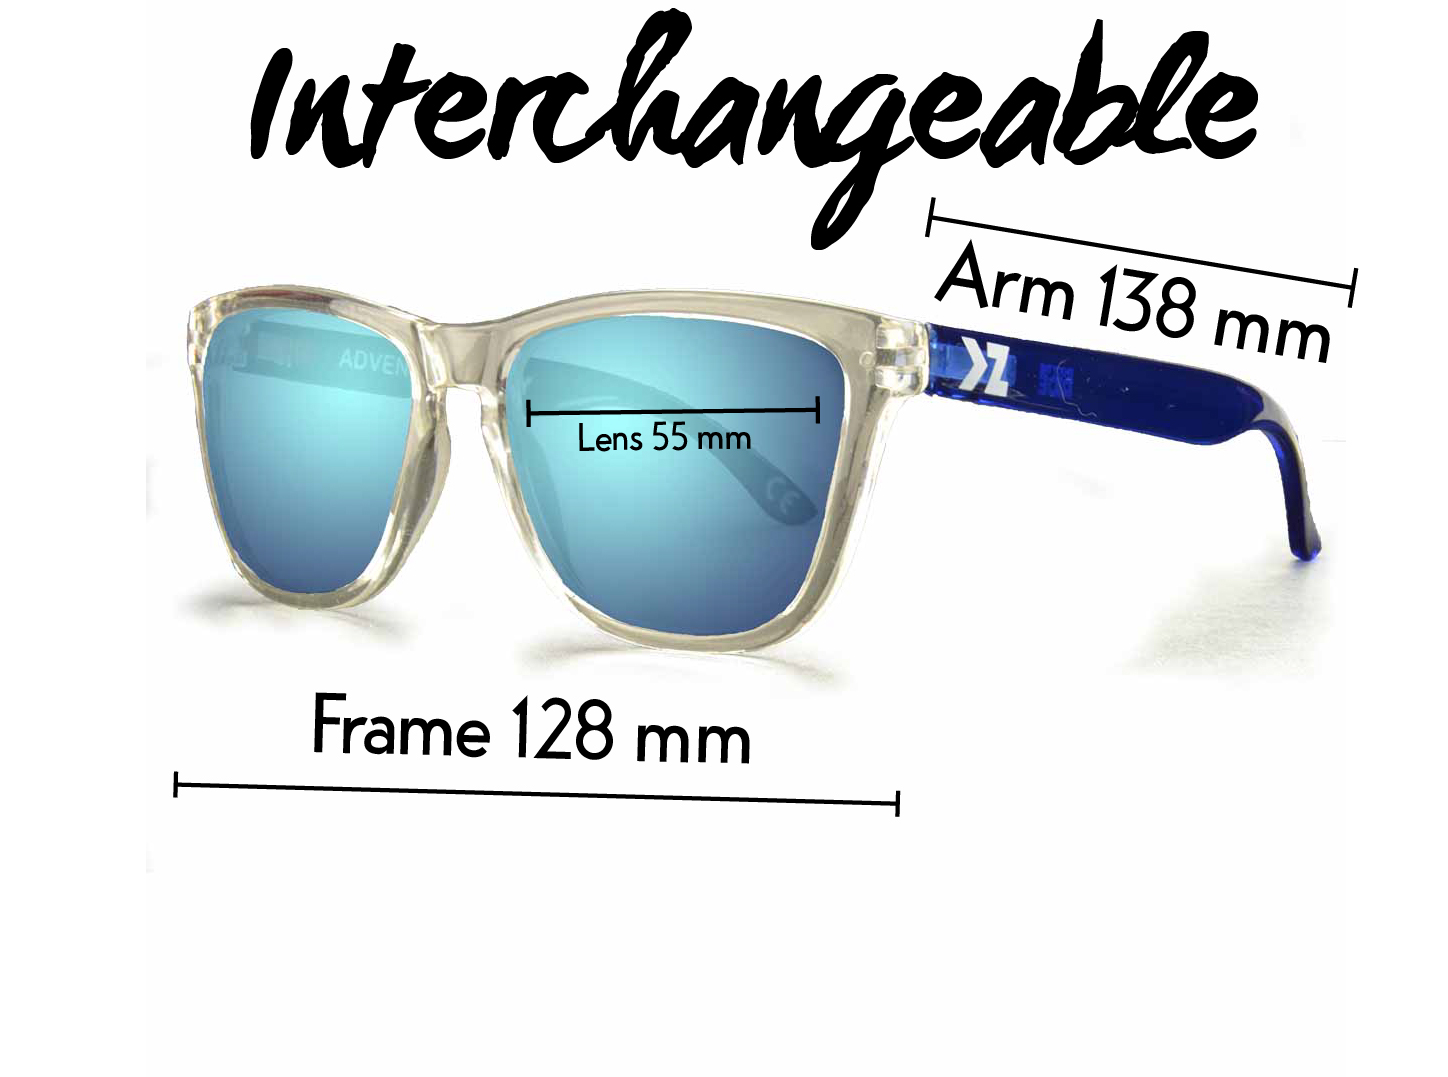 Interchangeable Sizing